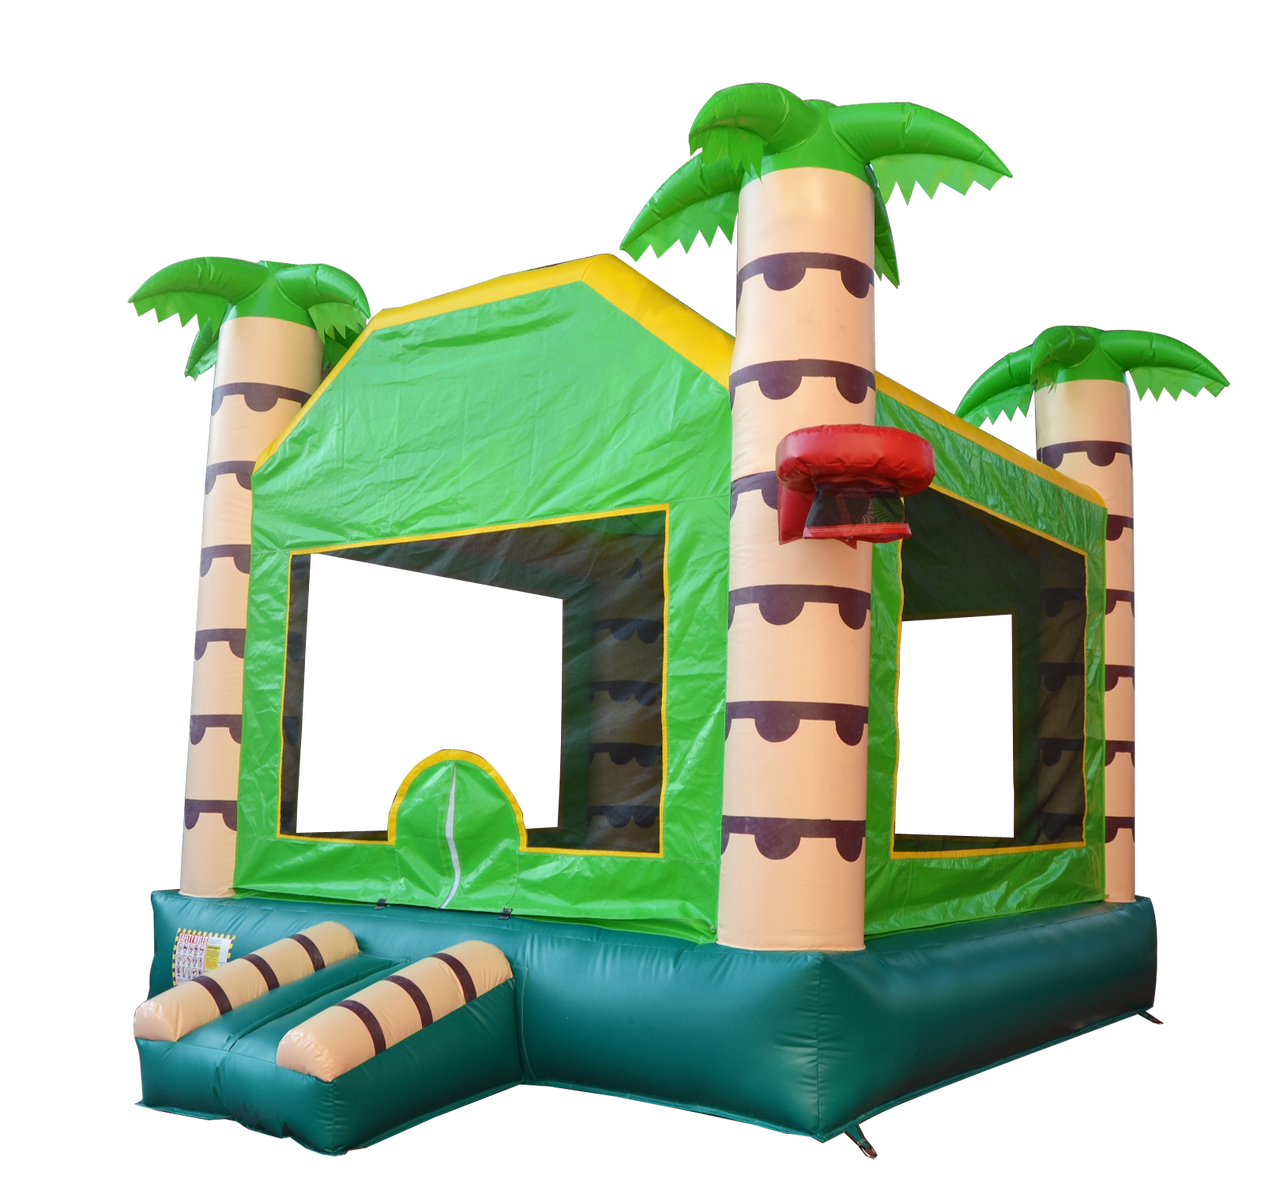 Free bounce house clipart clip art royalty free stock 15' x 15' Tropical Bounce House - Discount Bouncers clip art royalty free stock